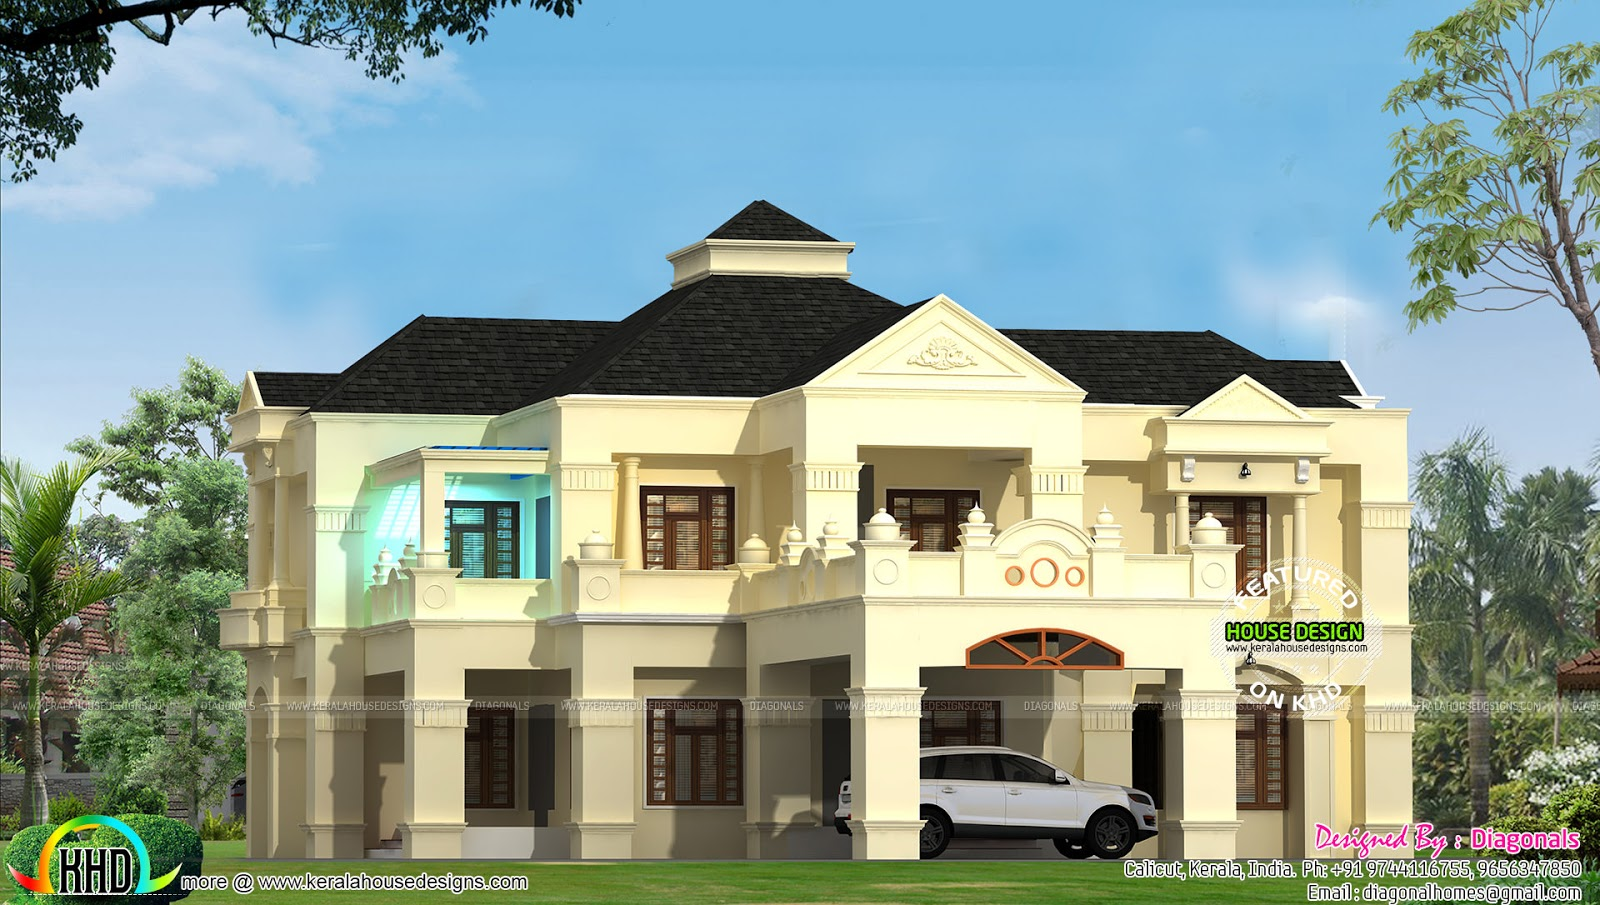 Colonial Style 4500 Sq Ft Home Design Kerala Home Design